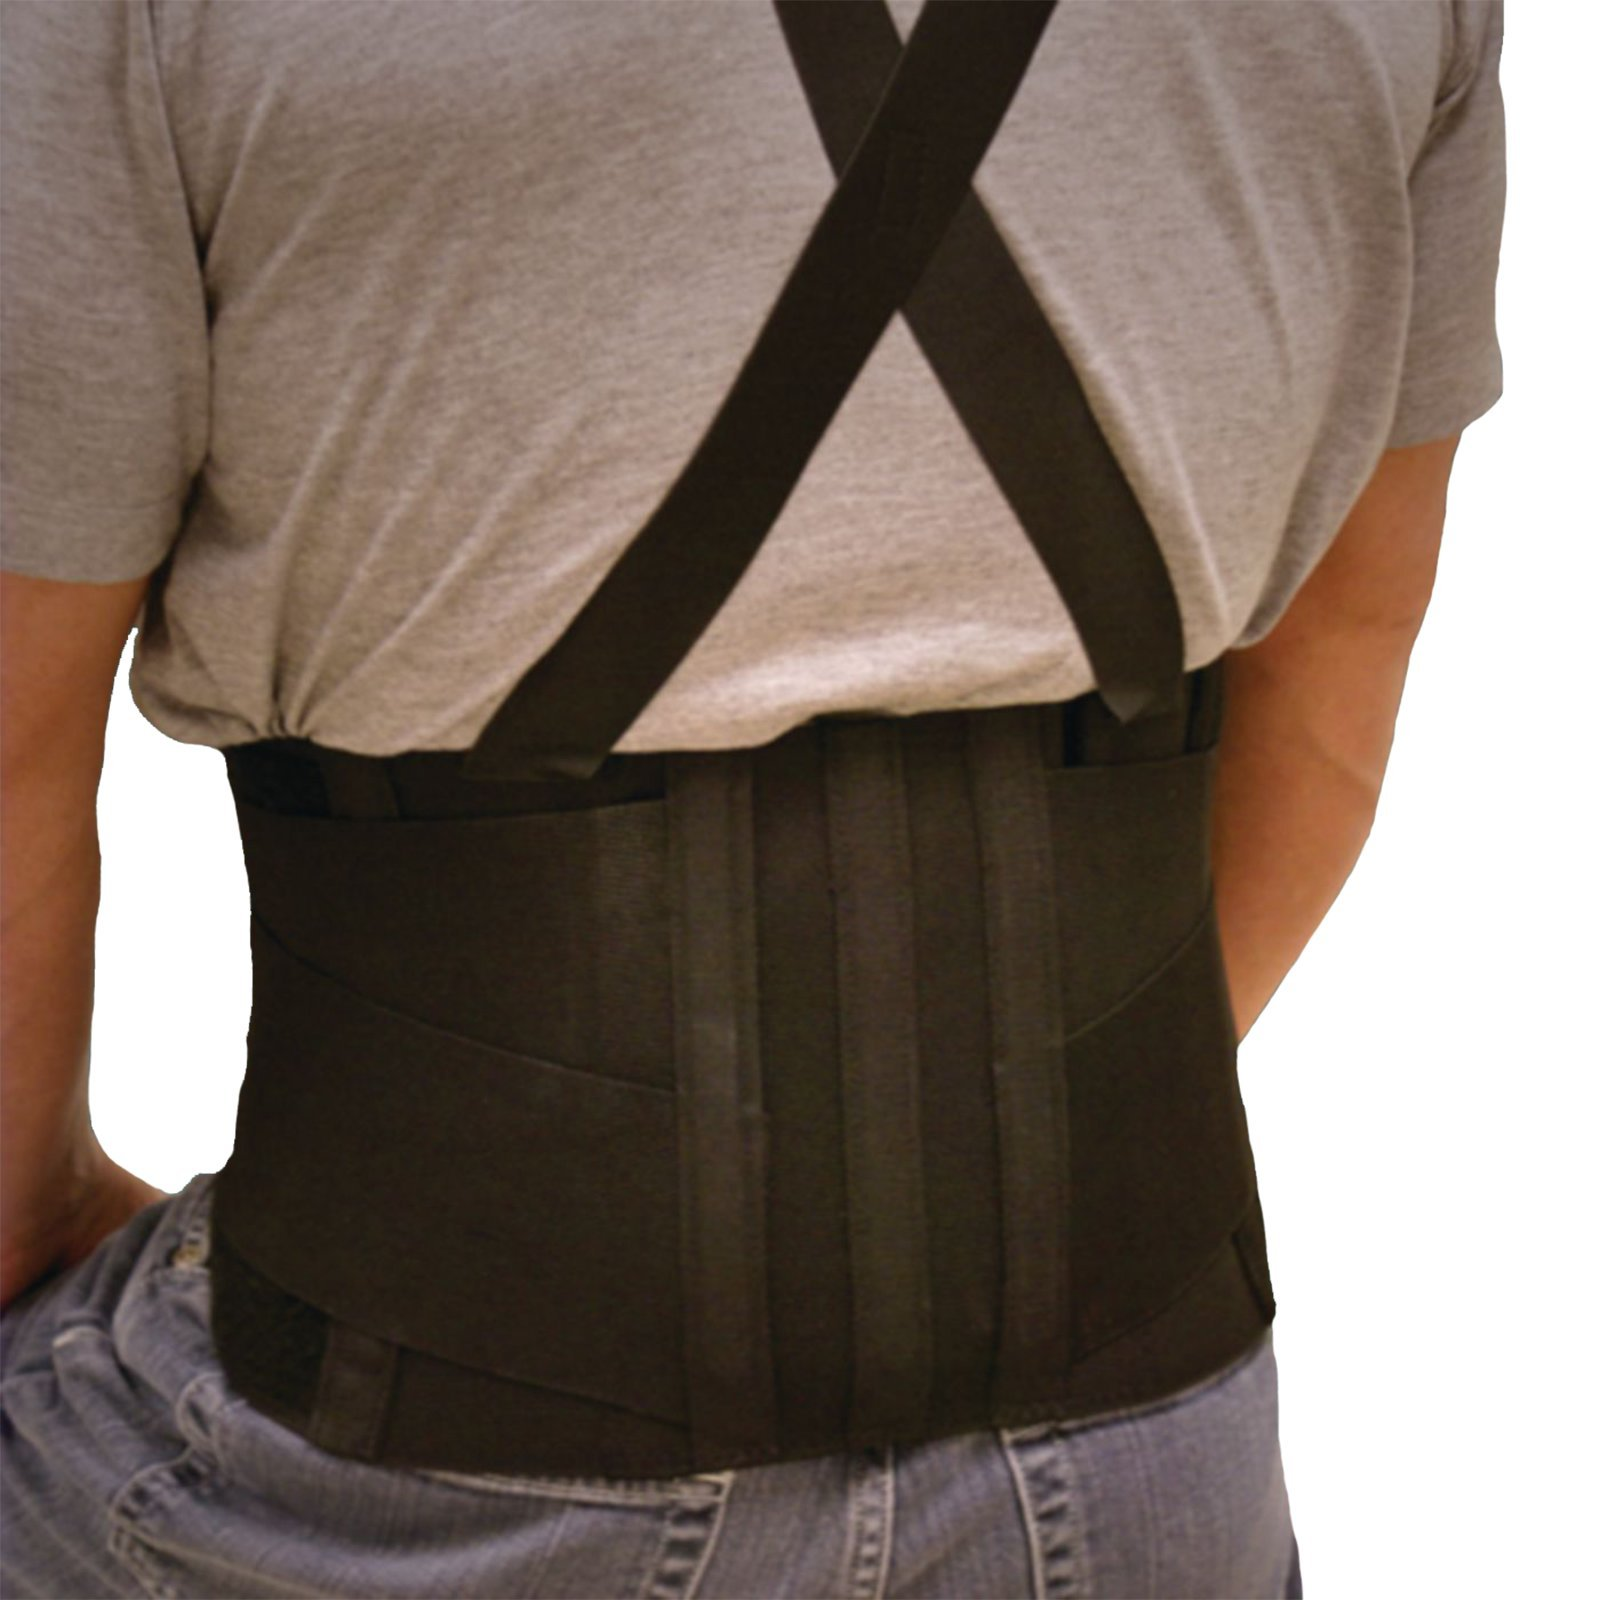 Lohmann & Rauscher Industrial Back Support, Contoured Lumbar Support Brace for Lower Back Pain, Support Belt with Foam Padding for Heat Retention and Compression